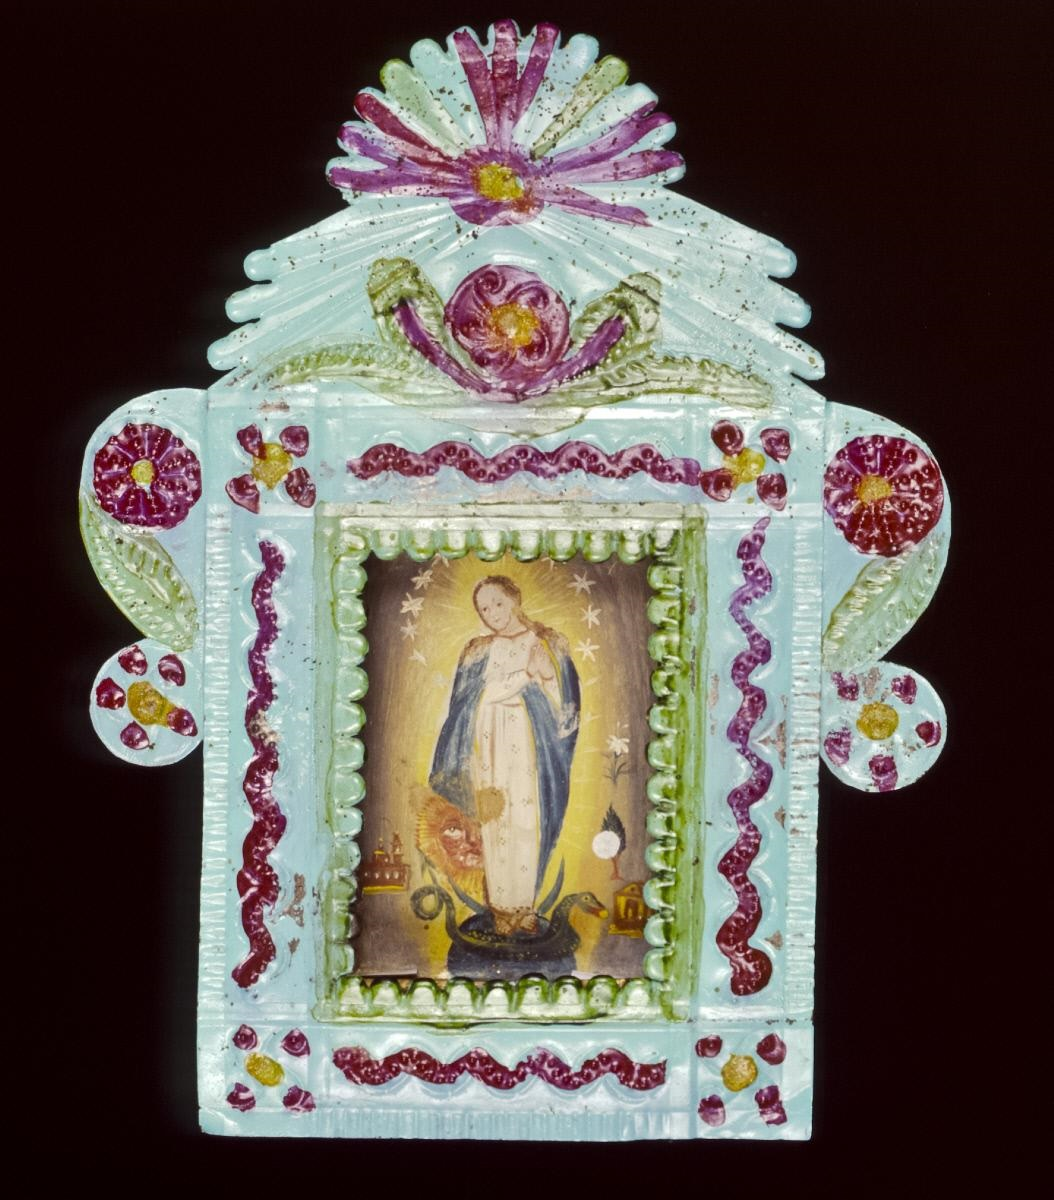 Retablo, Mexico, ca. 1850. From the Girard Foundation Collection at the Museum of International Folk Art